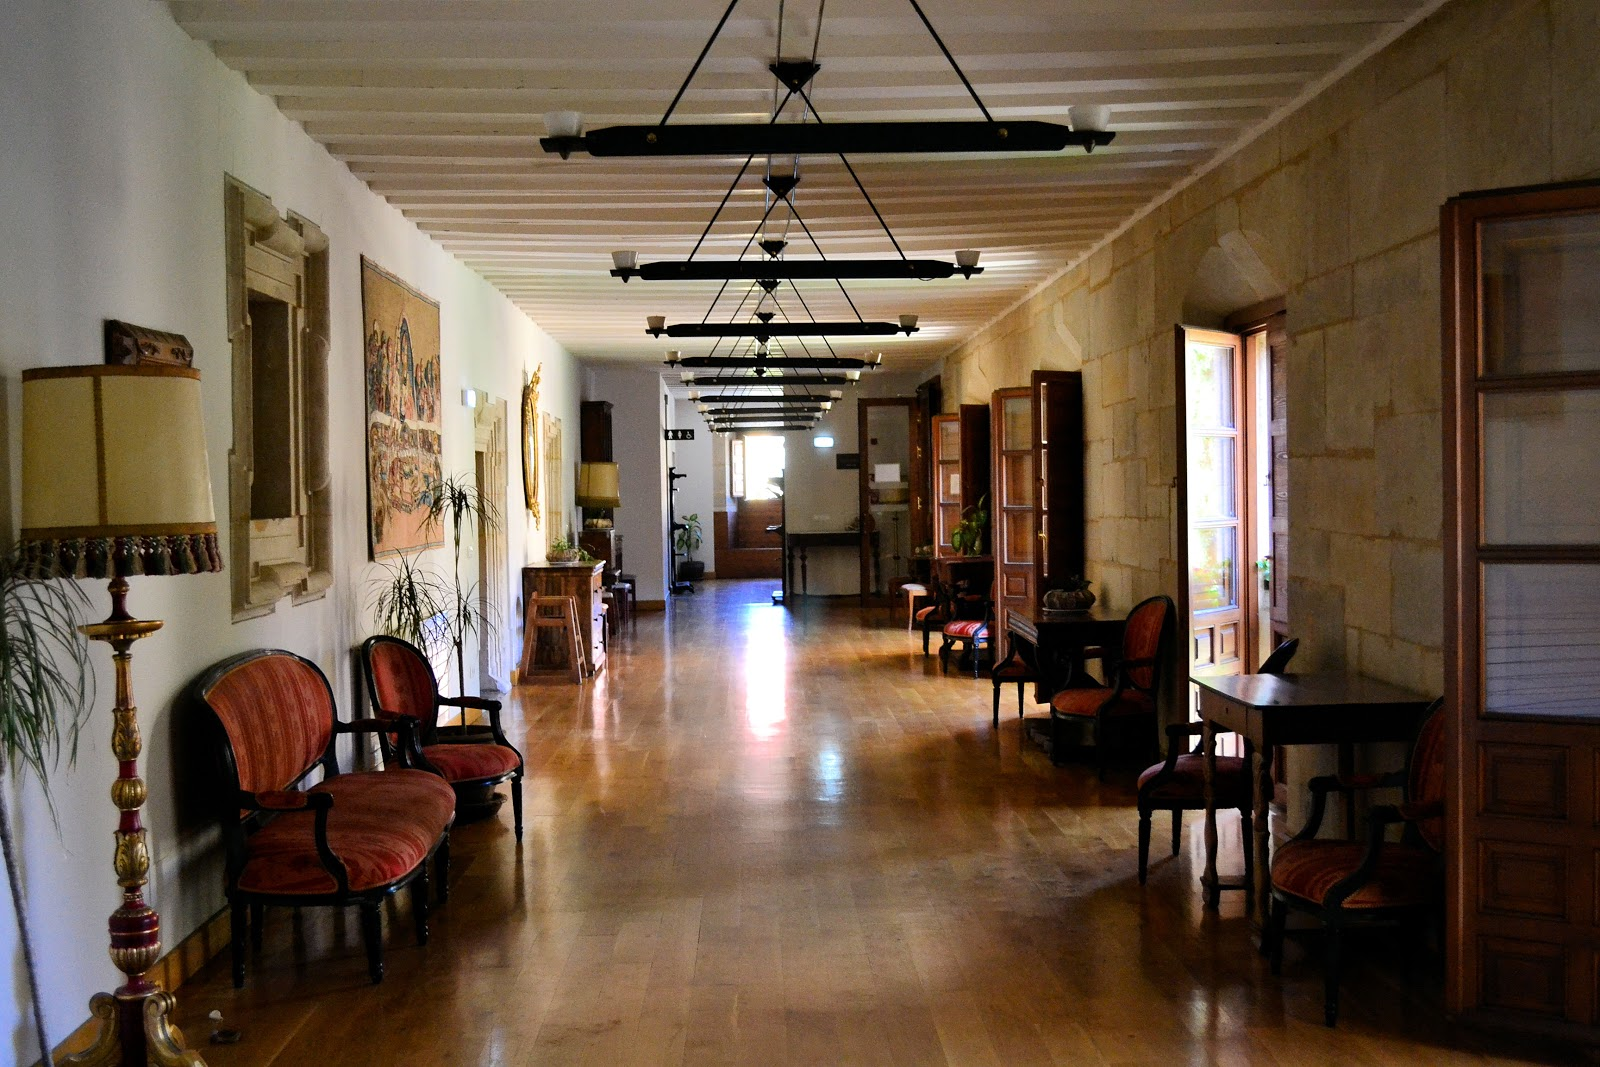 The Royal Collegiate of Saint Isidoro Hotel second-floor interior.